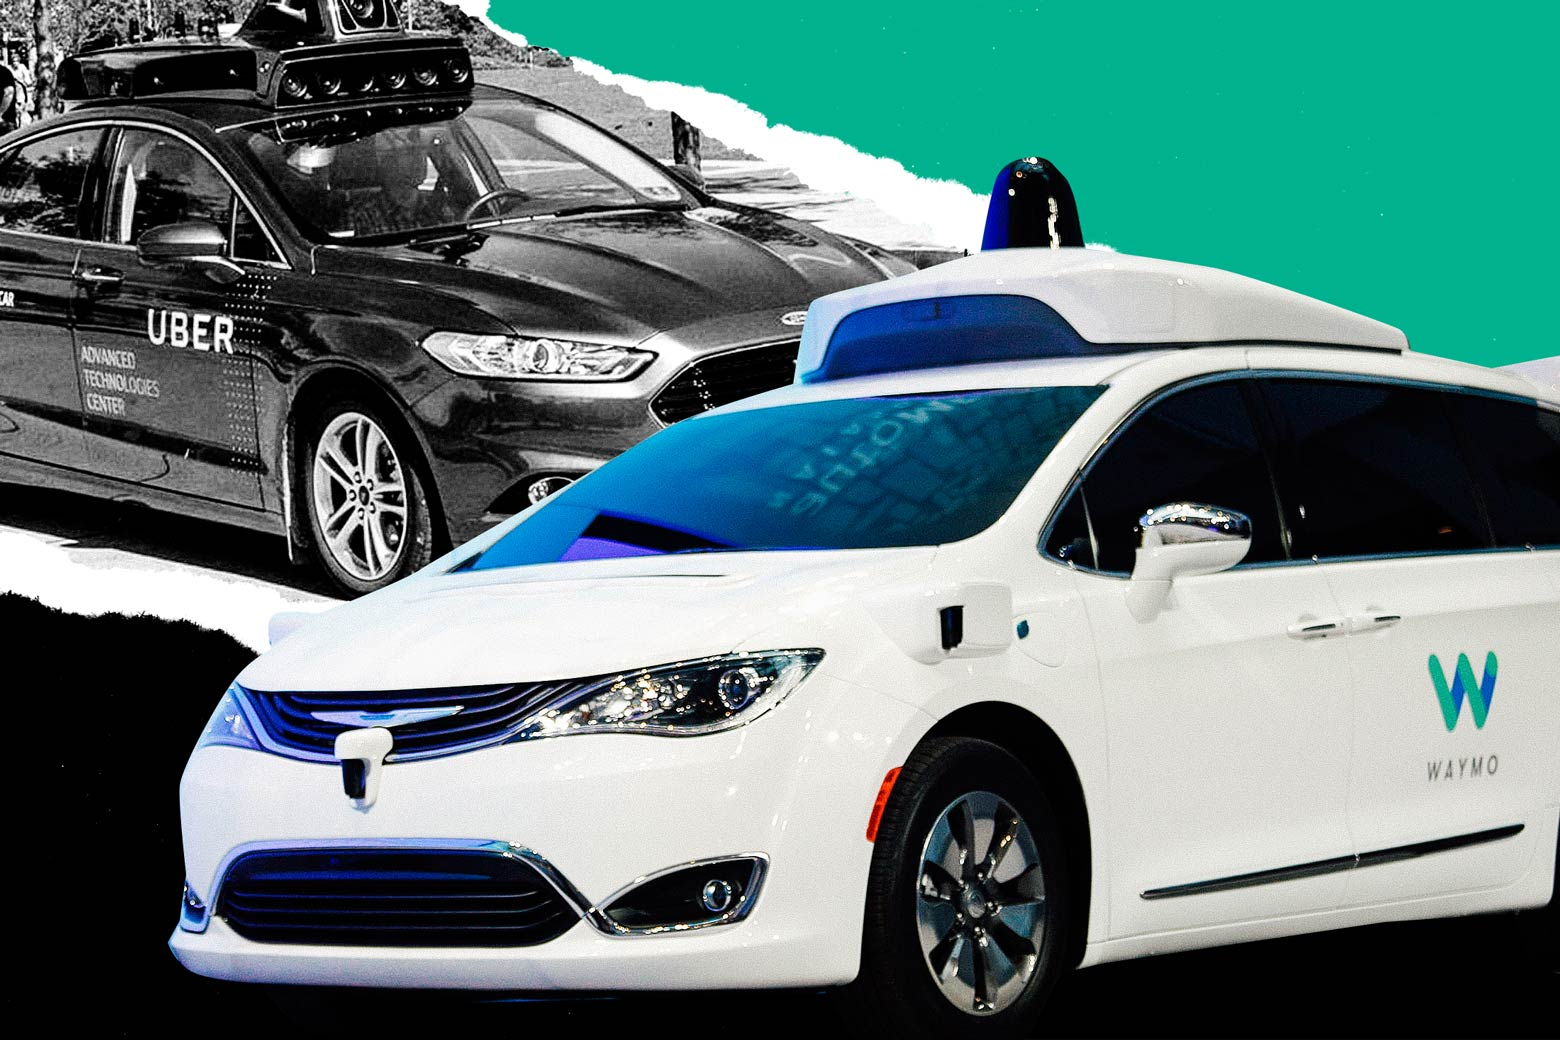 Photo illustration: test vehicles from Uber and Waymo are juxtaposed against a green background. Photo illustration by Slate. Photos by Uber, Getty Images.